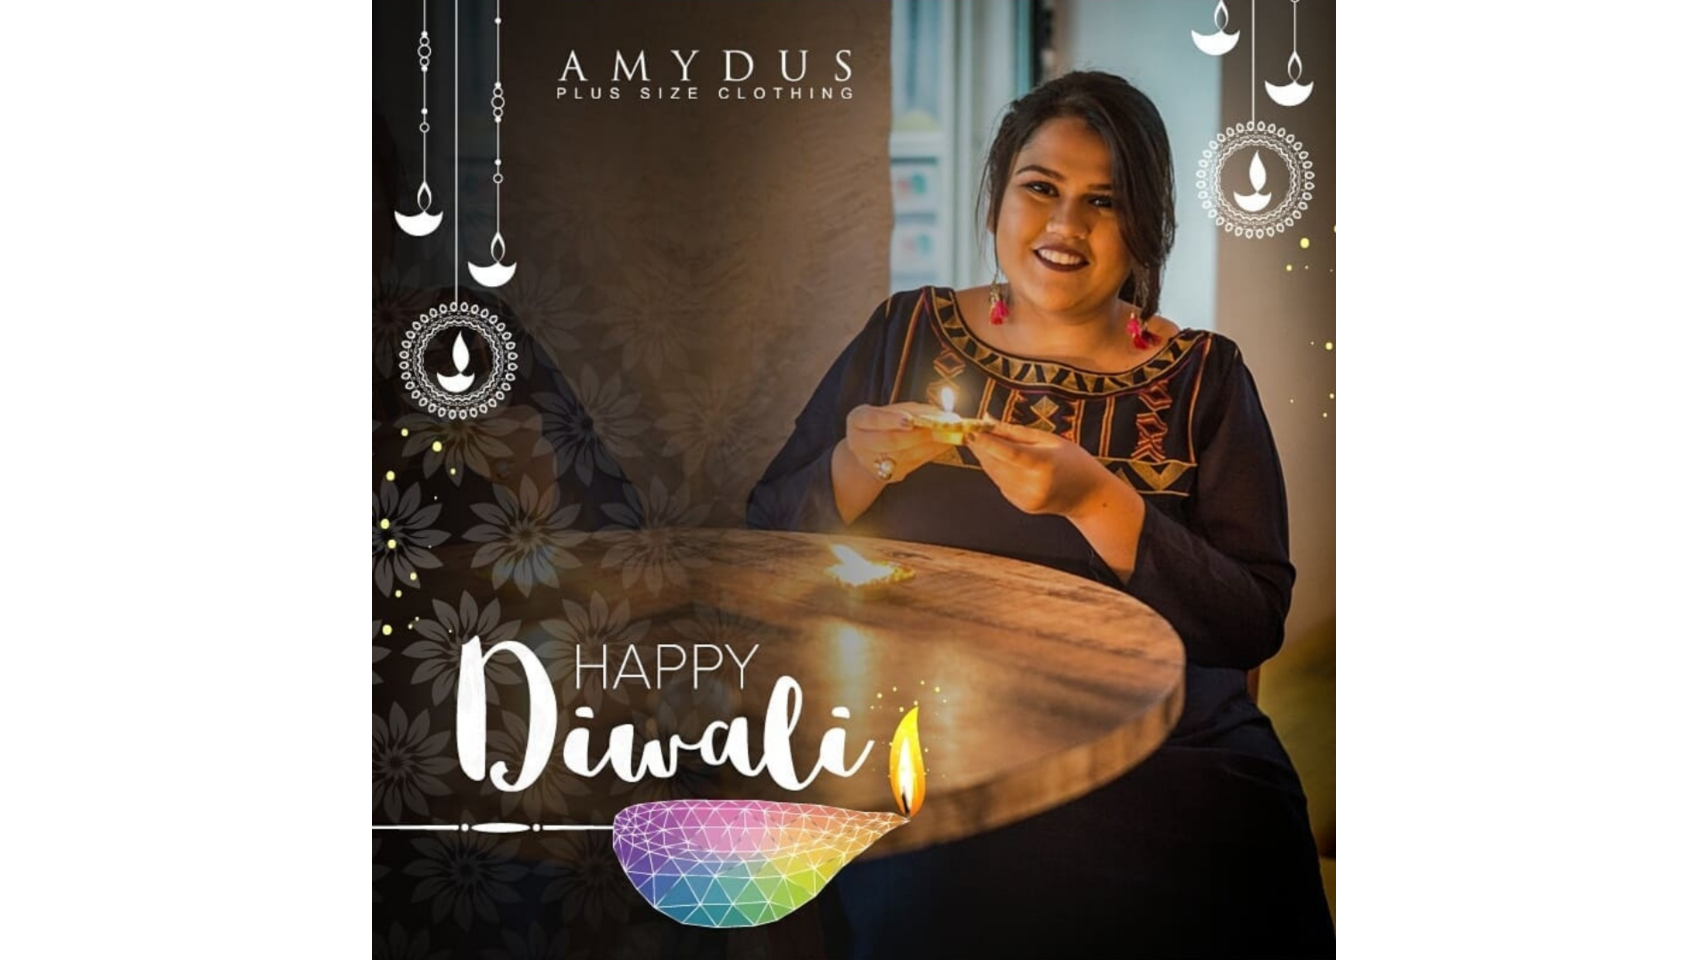 Keeping It Subtle This Diwali ft. AMYDUS image